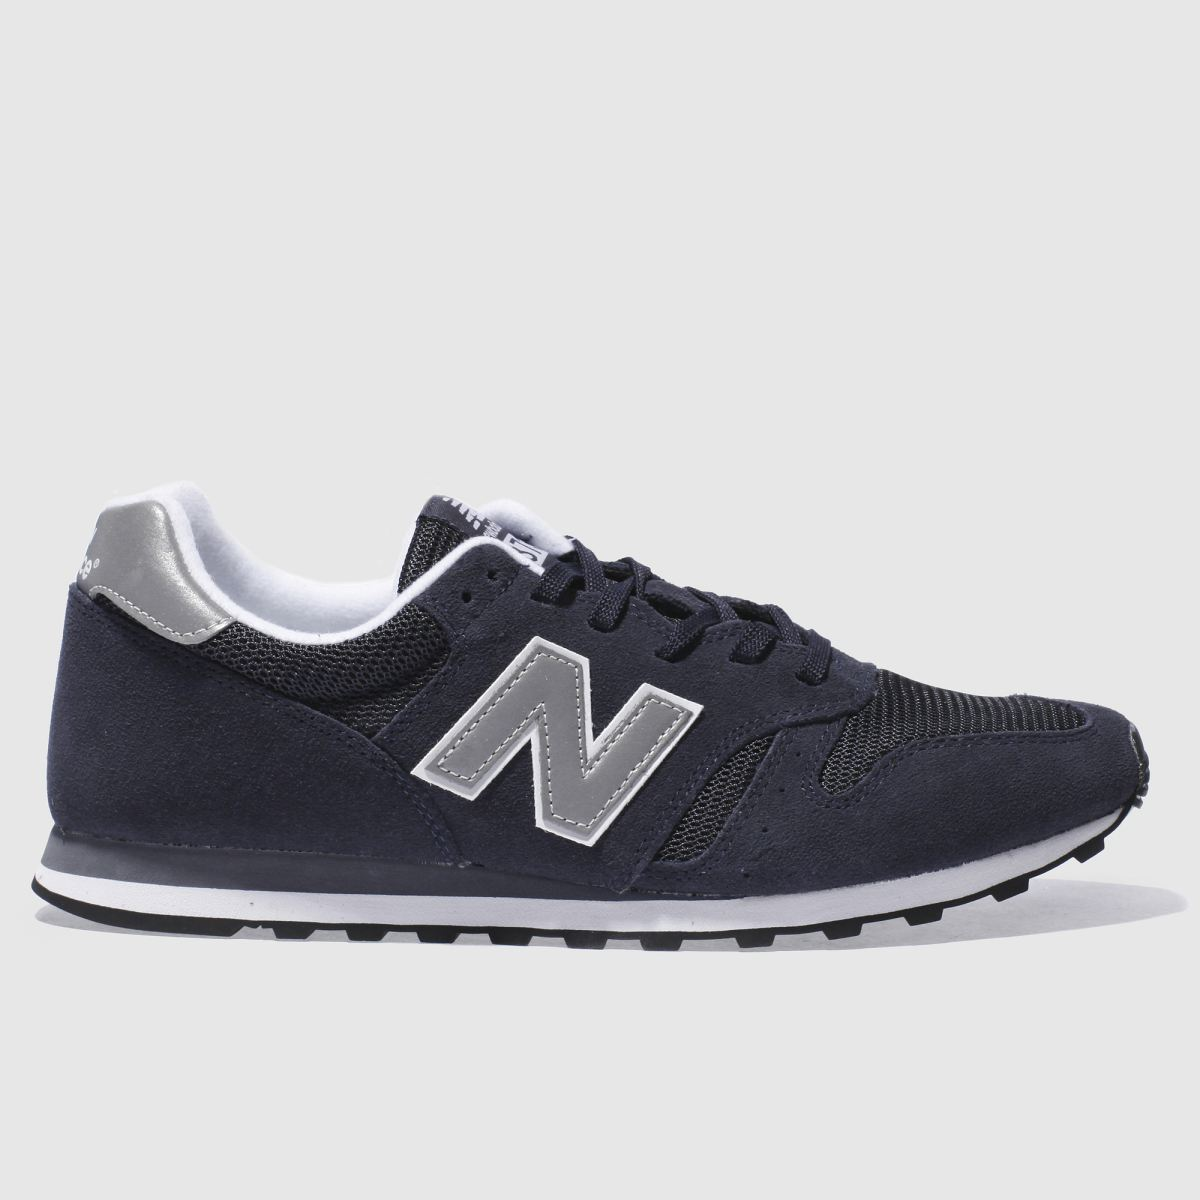 9aab05e4bd2c5 Cheap new balance 360 trainers  Free shipping for worldwide!OFF48 ...